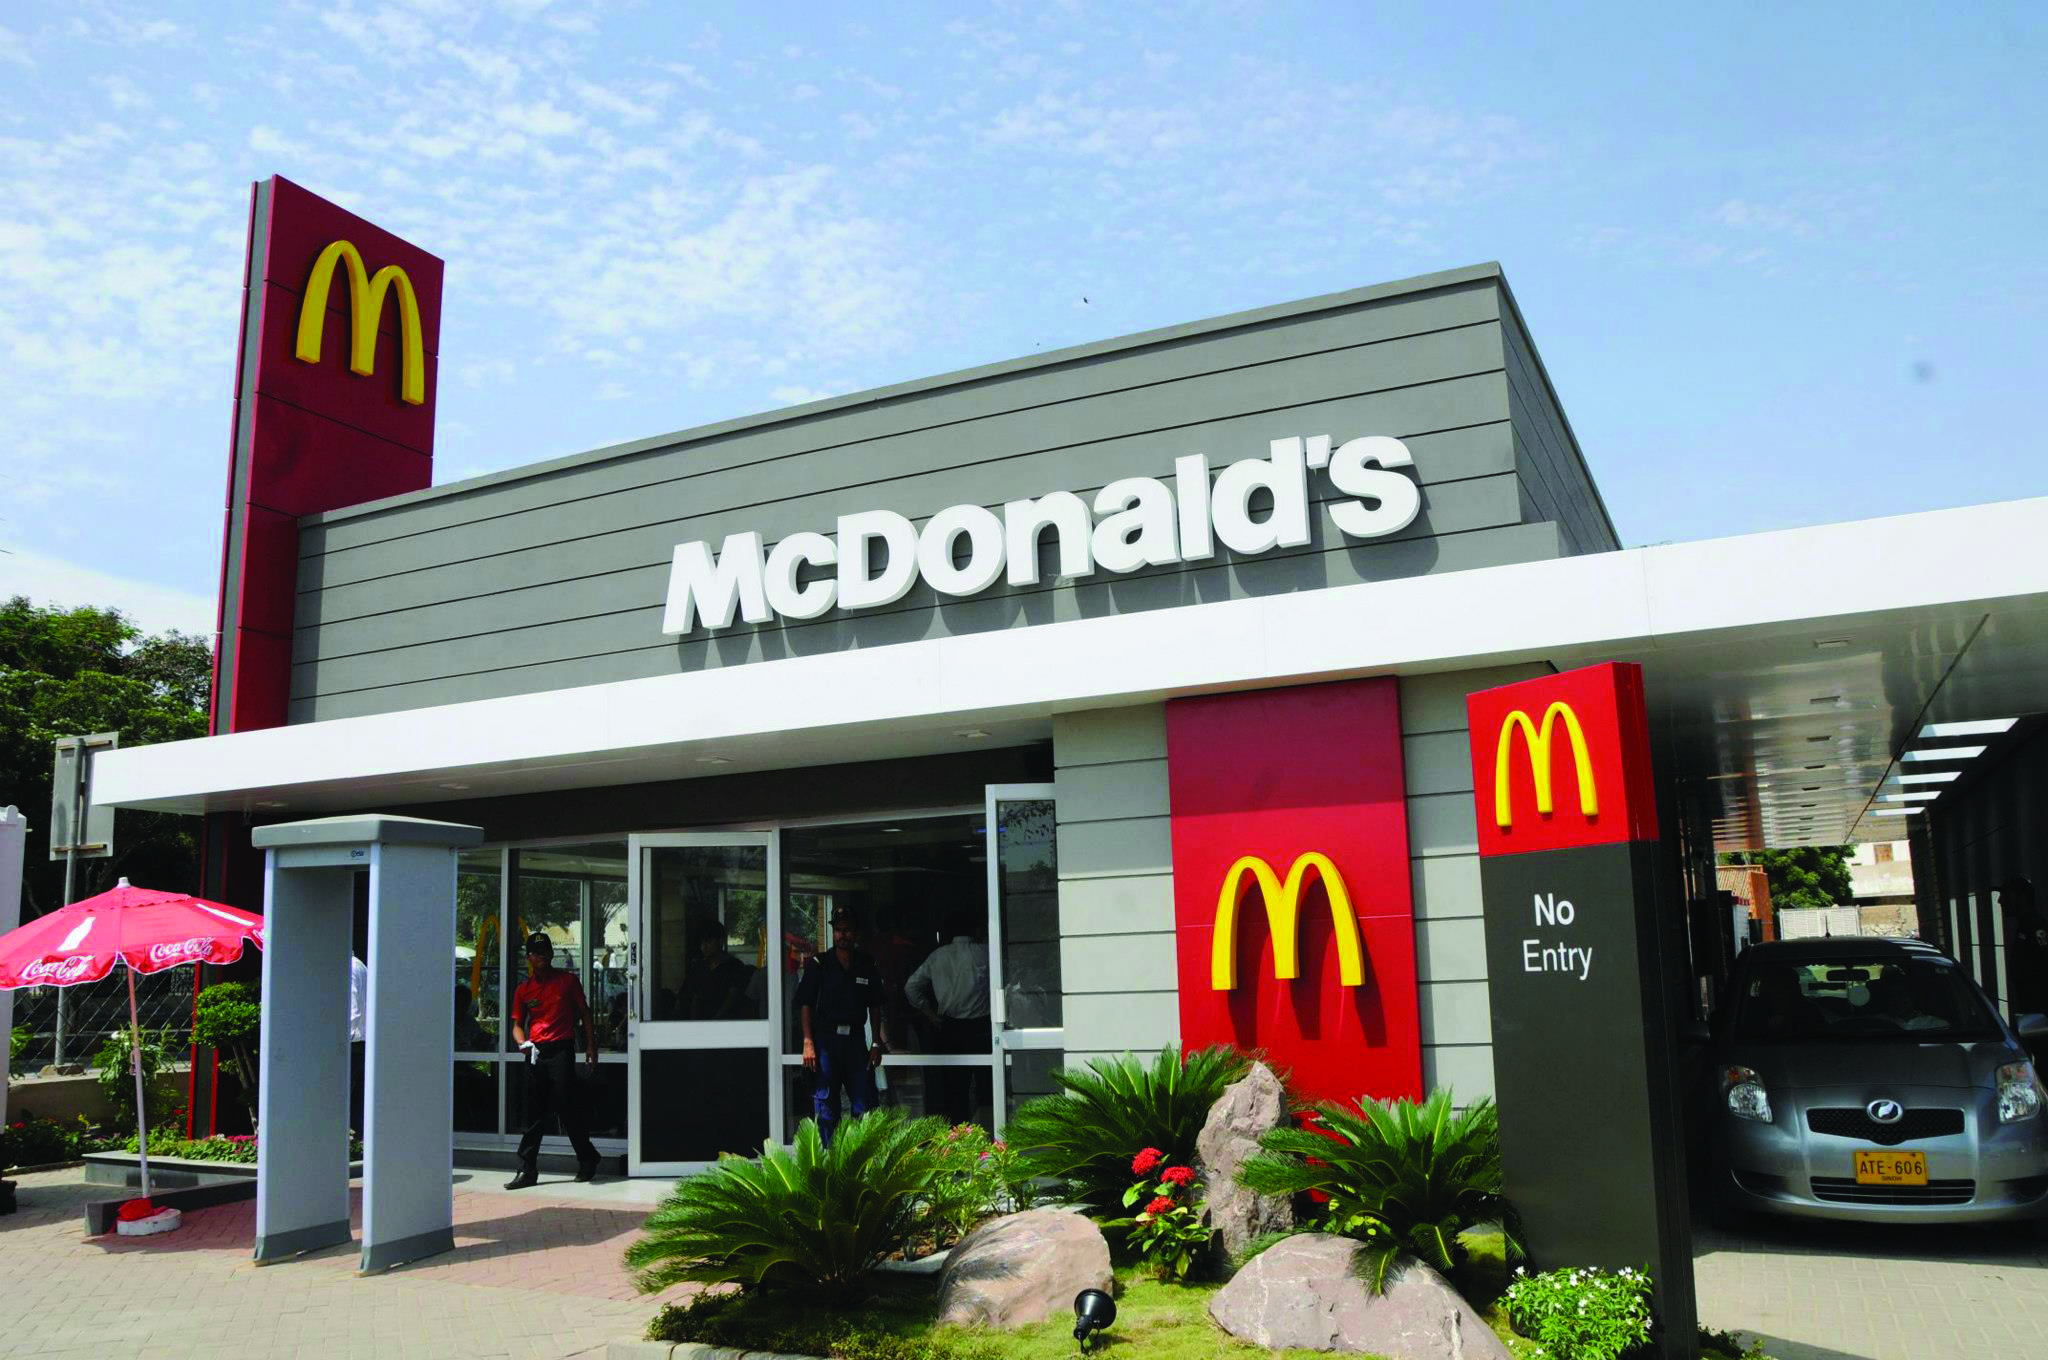 15-mcdonalds-drive-thru-at-main-korangi-road-dha-karachi-phase-i